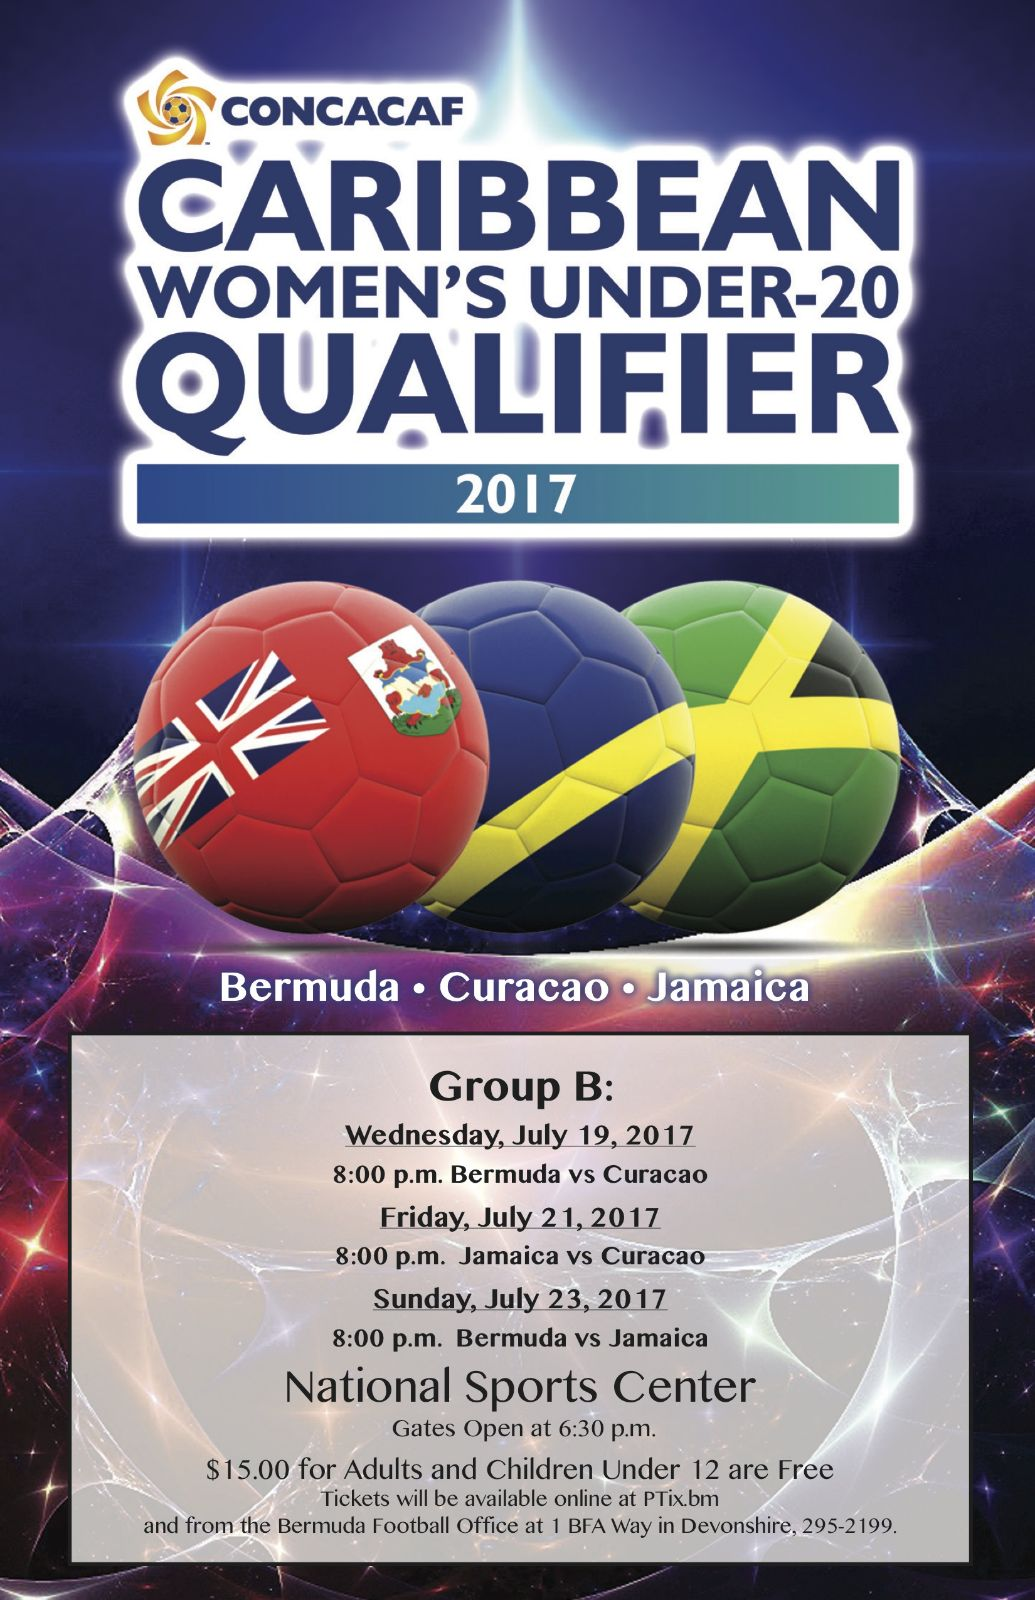 Caribbean Women's Under-20 Qualifier Bermuda July 2017